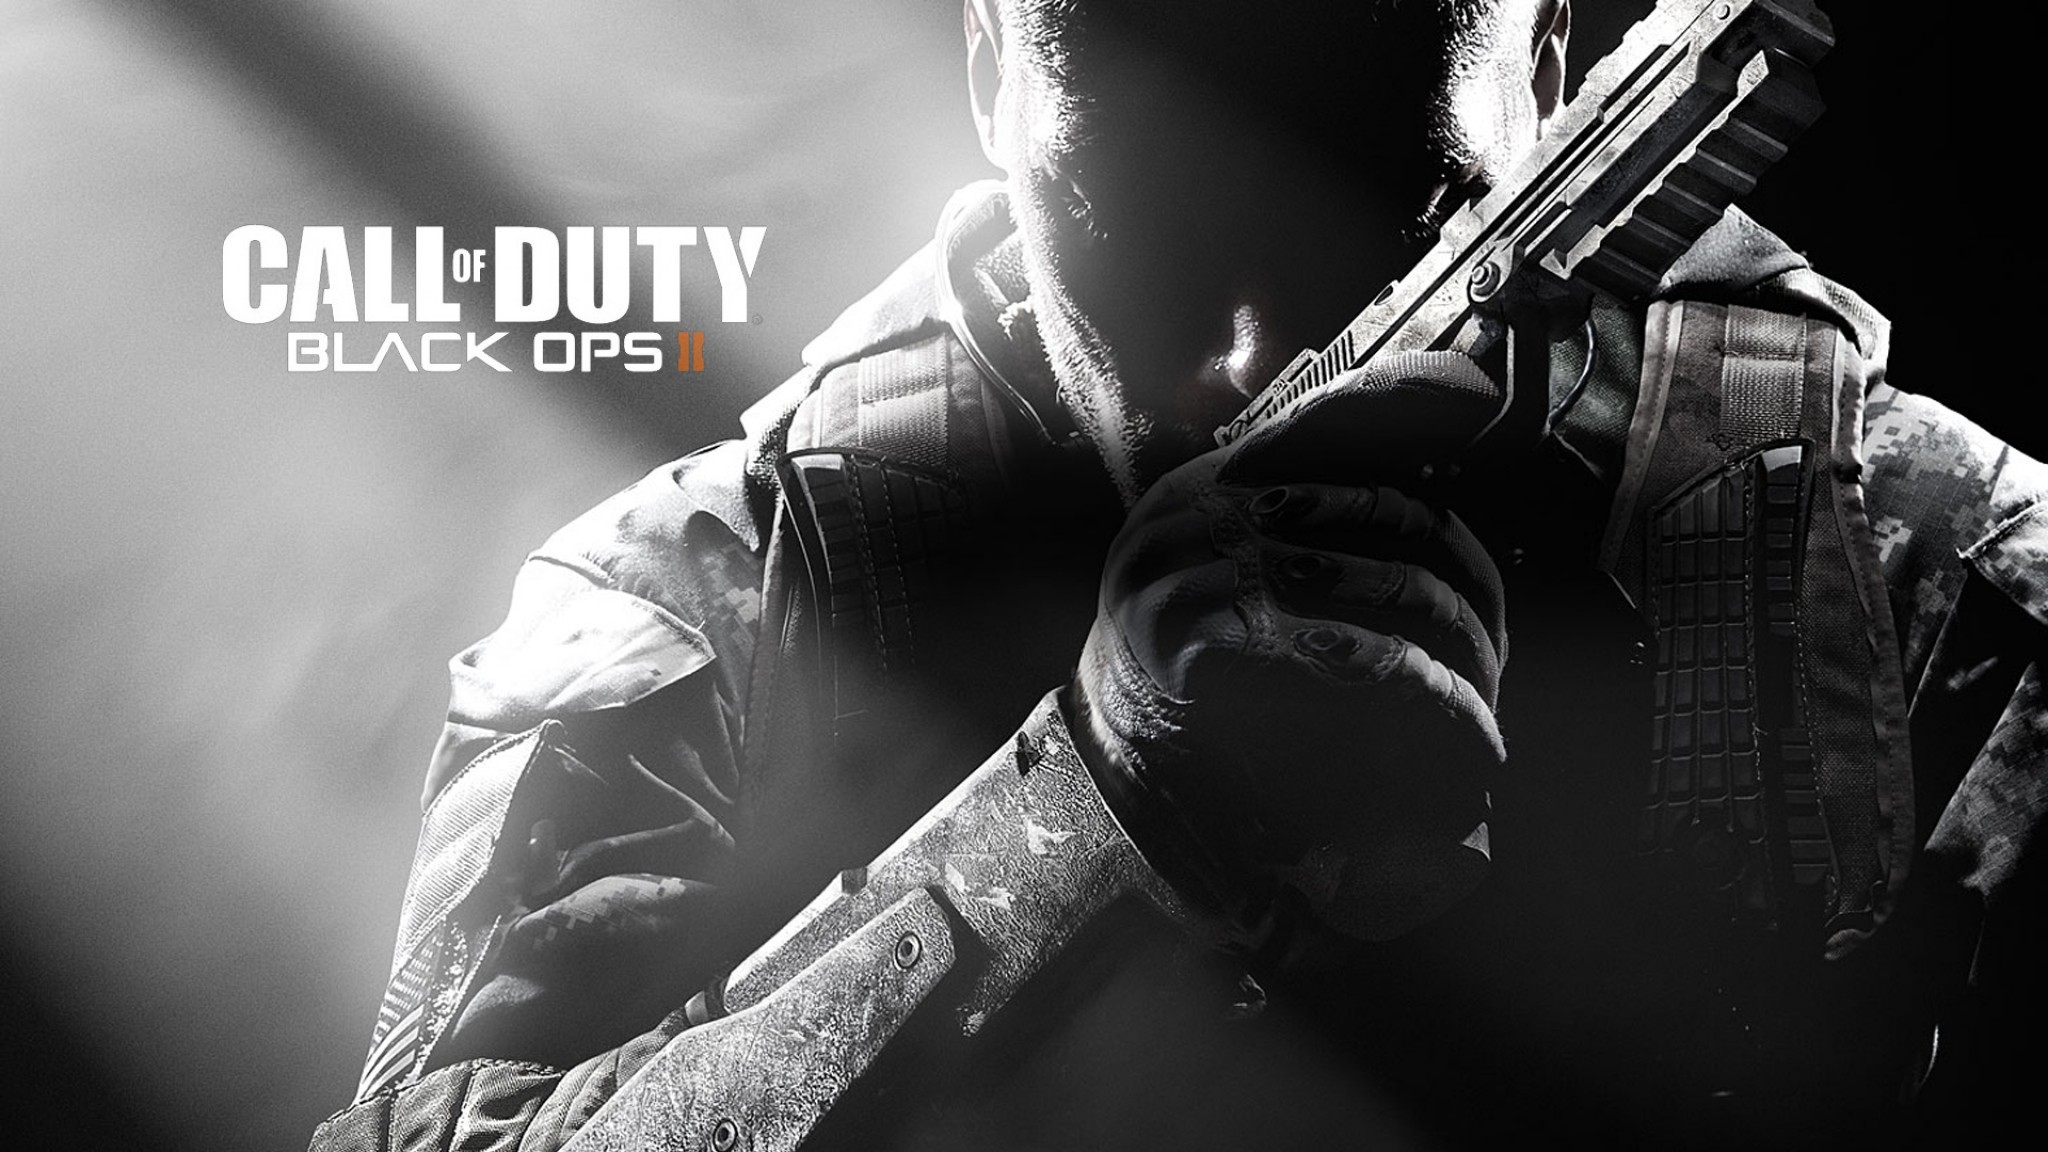 Wallpaper Call Of Duty, Black Ops 2, Soldiers, Weapons, Shooter.  Original Resolution